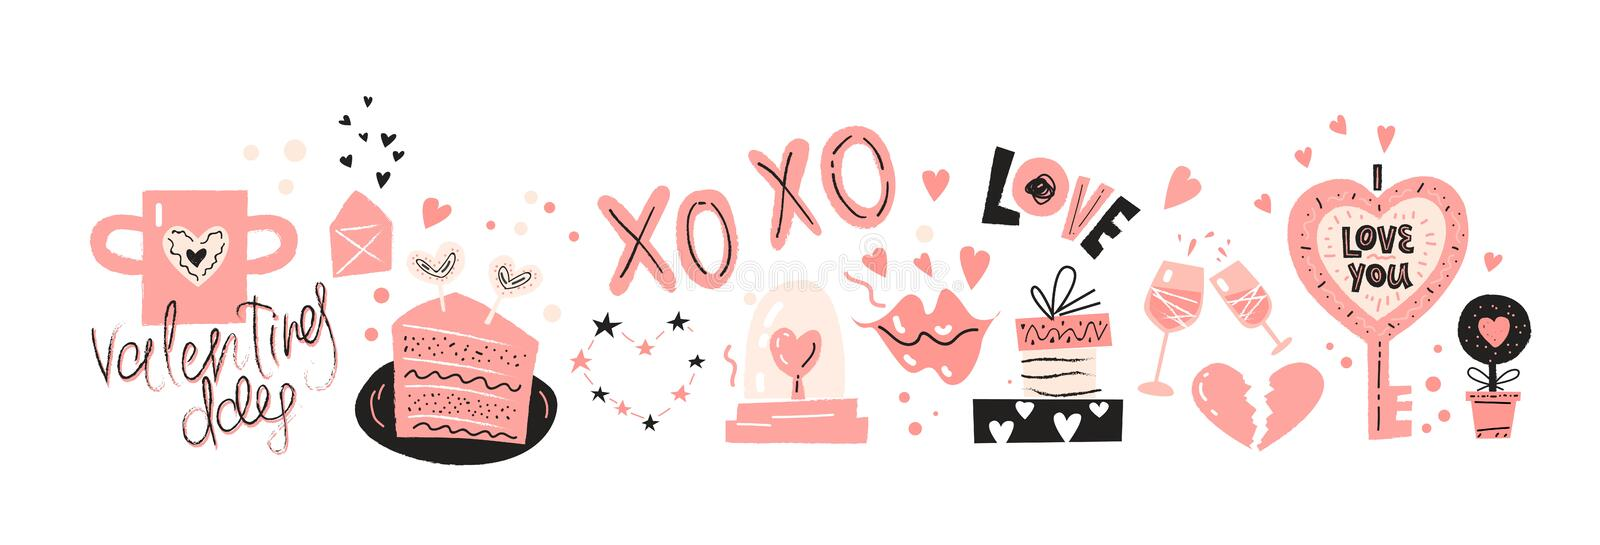 Valentines Day icons set design with hand drawn elements vector illustration